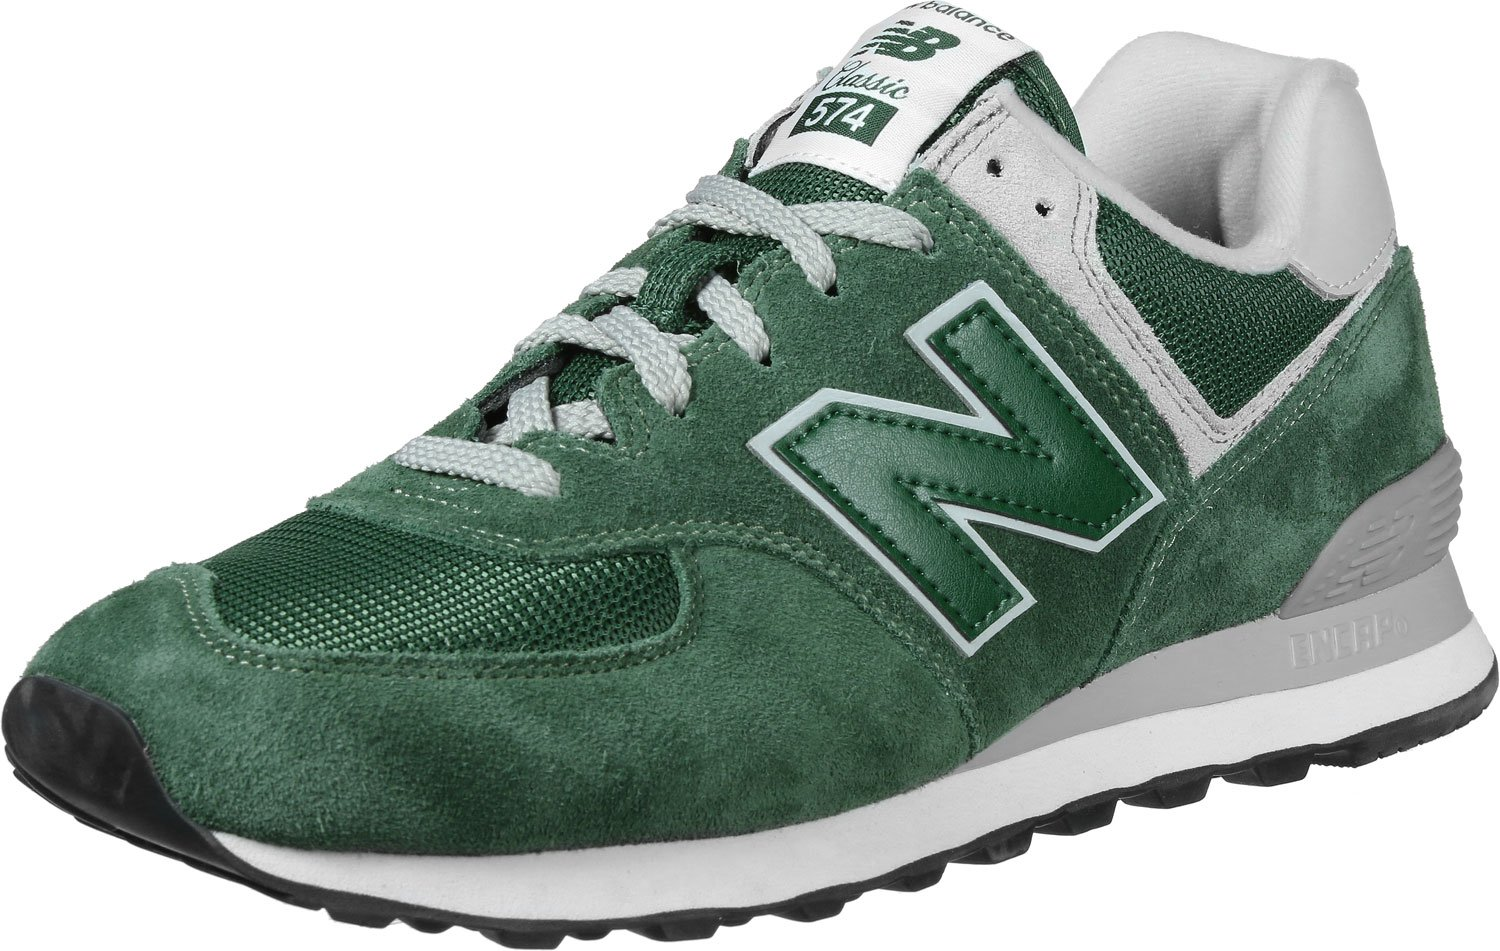 newest d67be c8134 New Balance Mens ML574 Green Suede Mesh Trainers 8.5 US